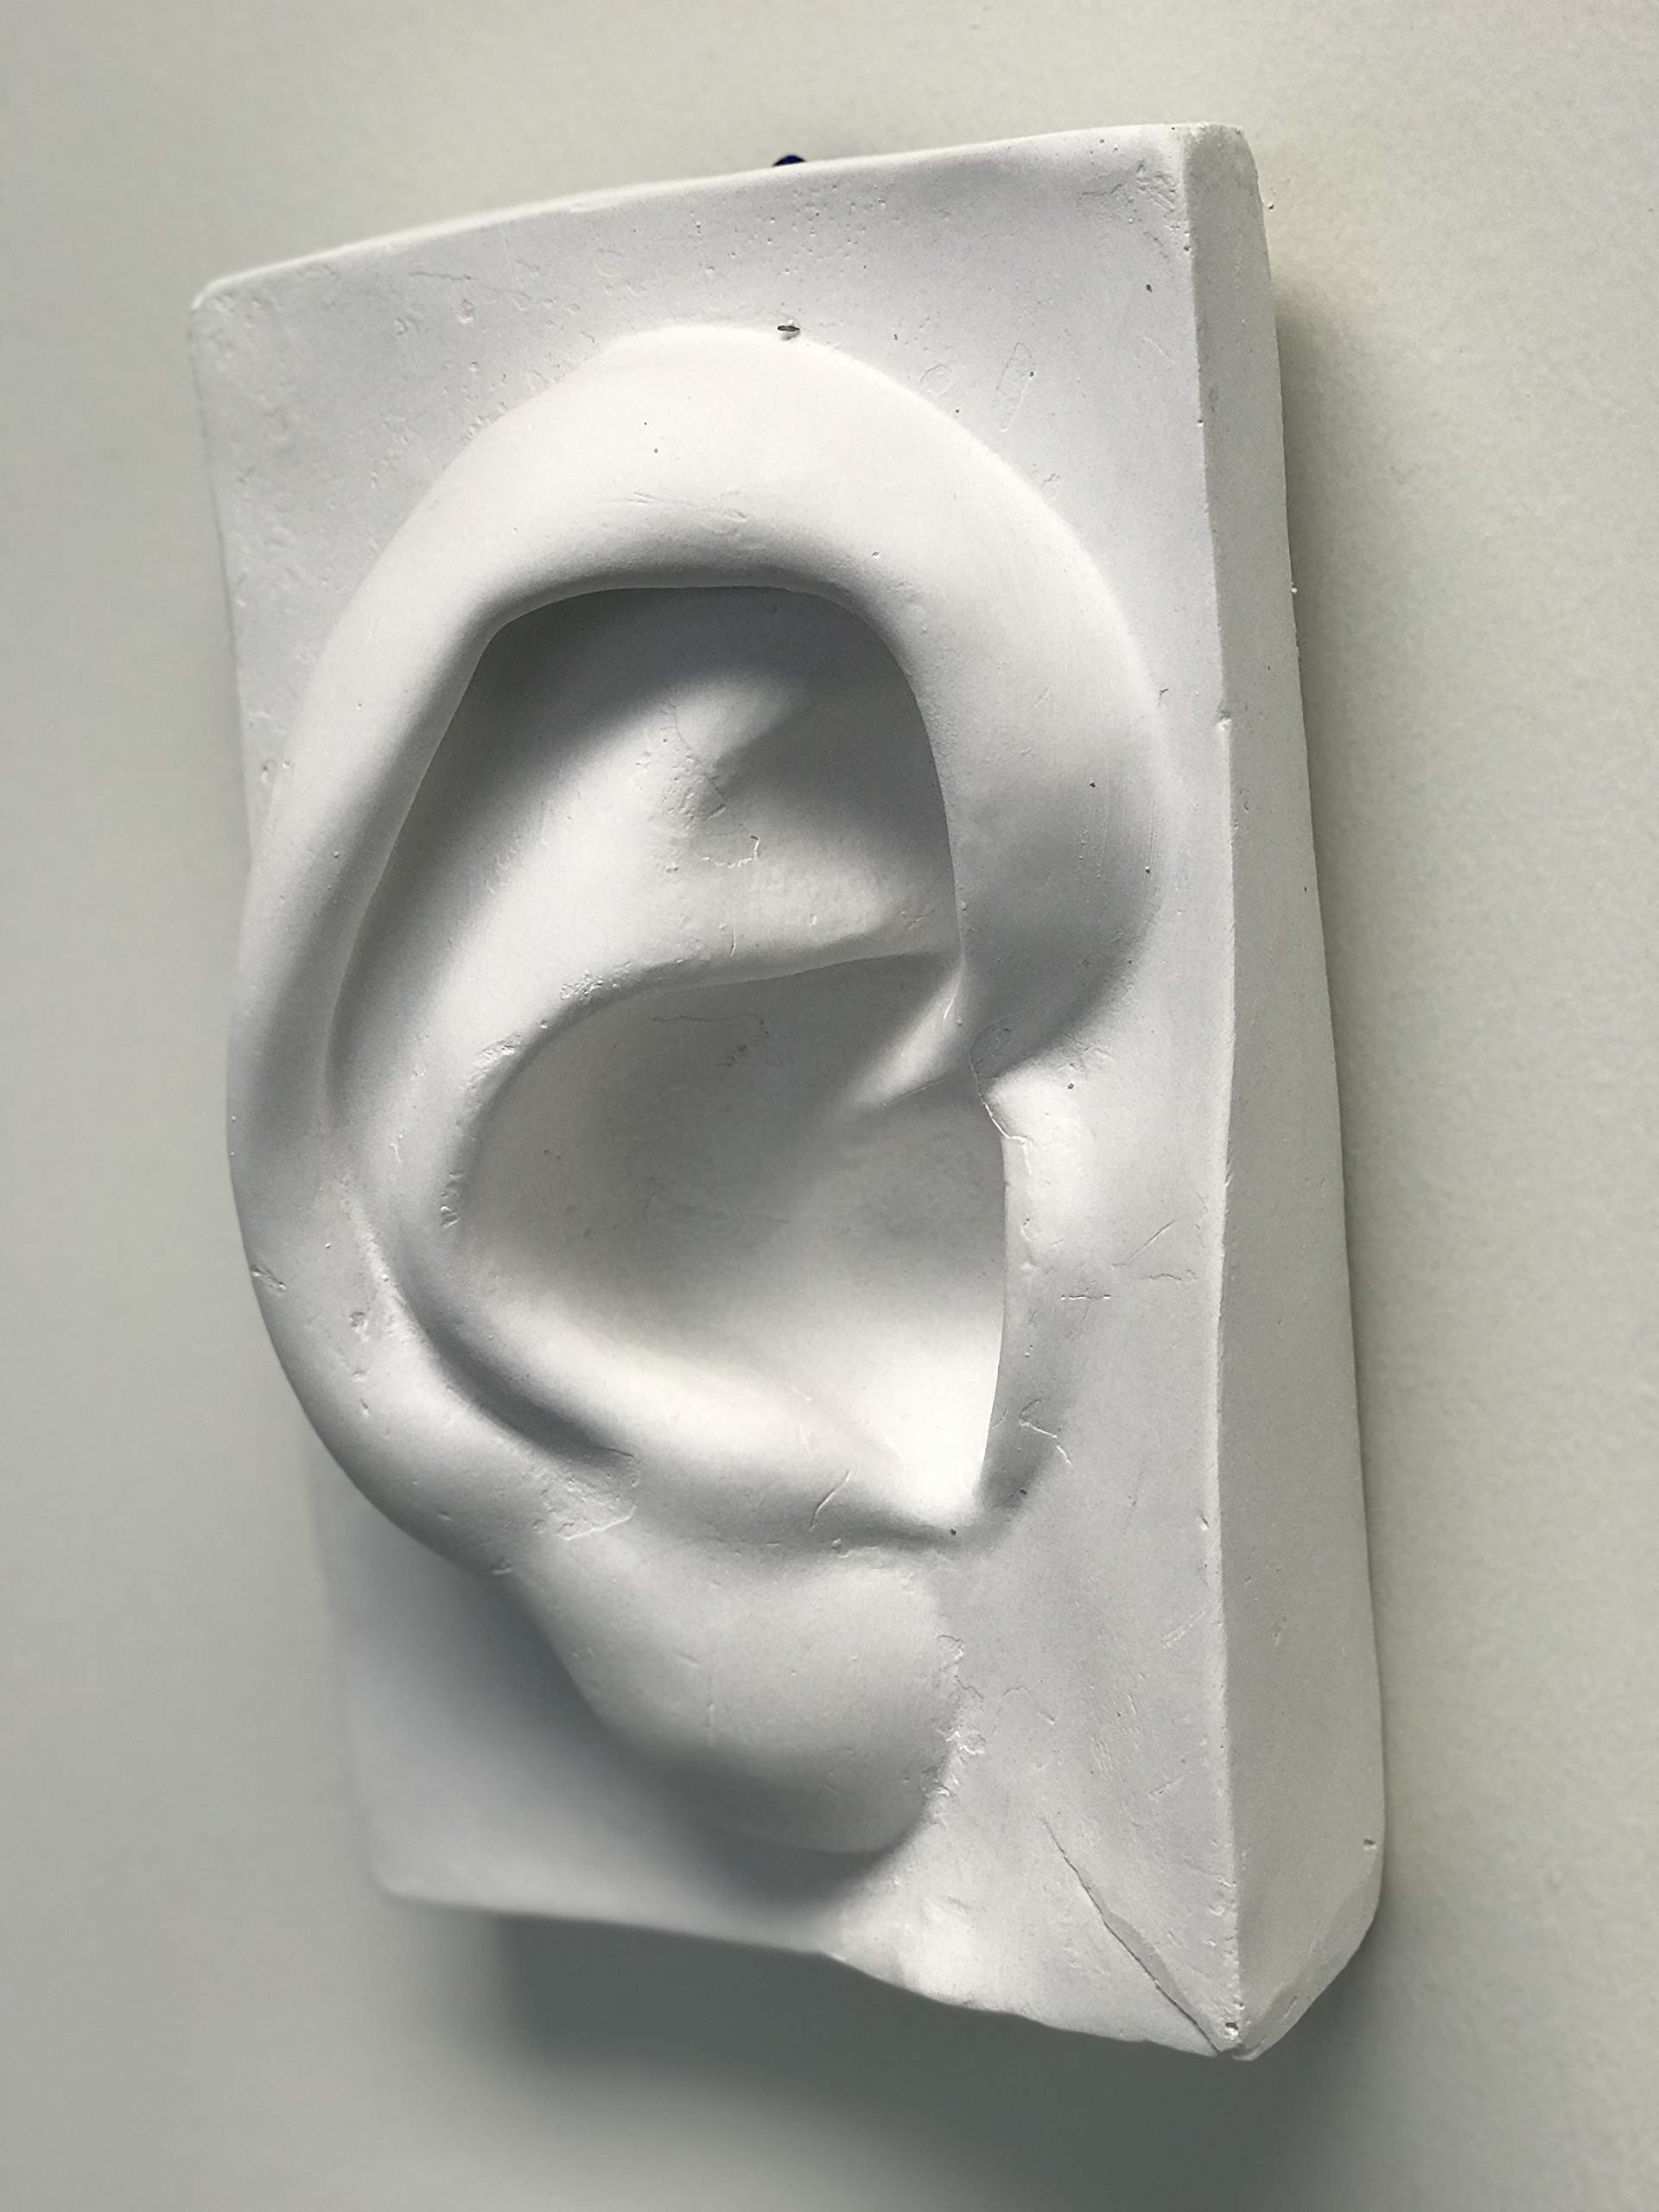 Torino Artist Plaster Cast Ear Figure for Art Studio, Classroom, Display, Home, Office or as a Gift